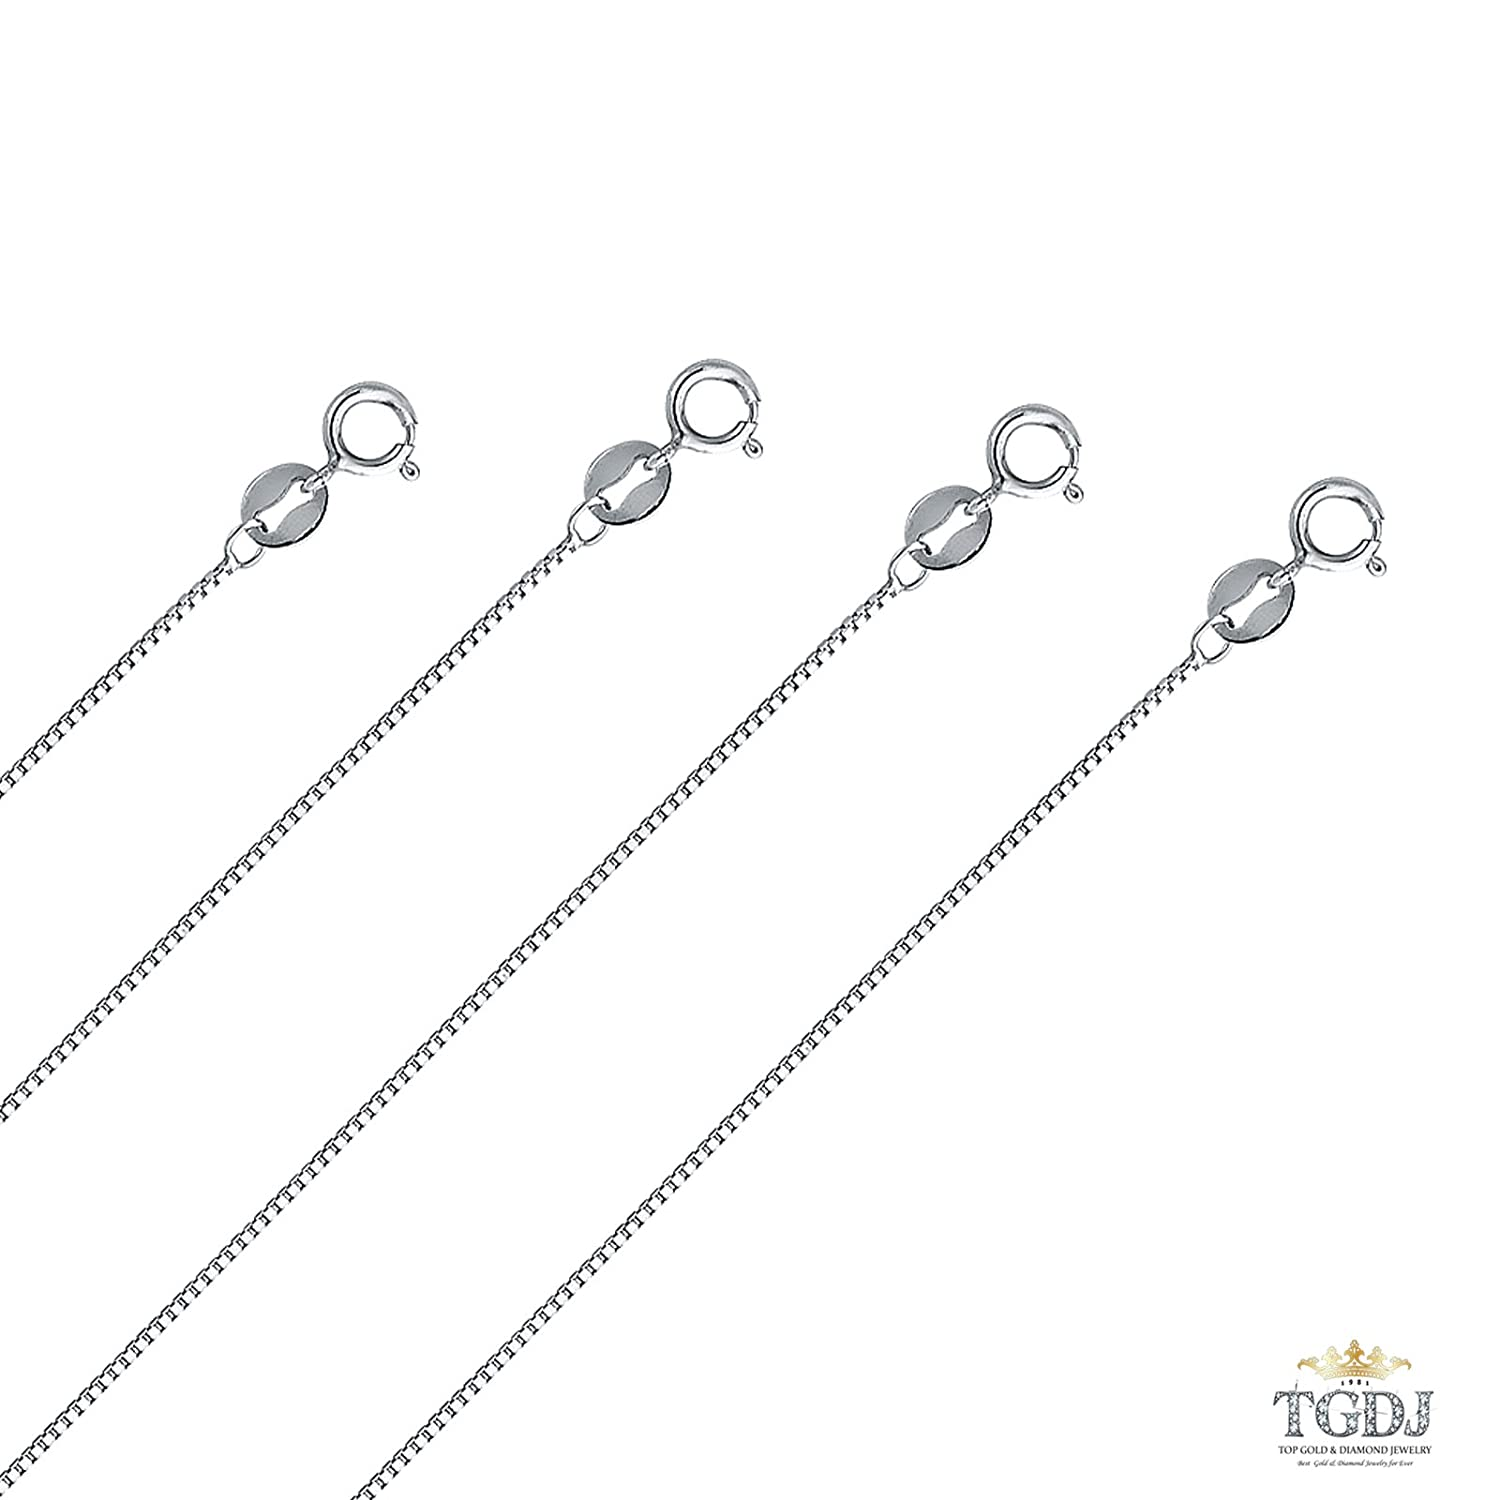 TGDJ 14K Solid Genuine White Gold 0.8 mm Box Chain Necklace